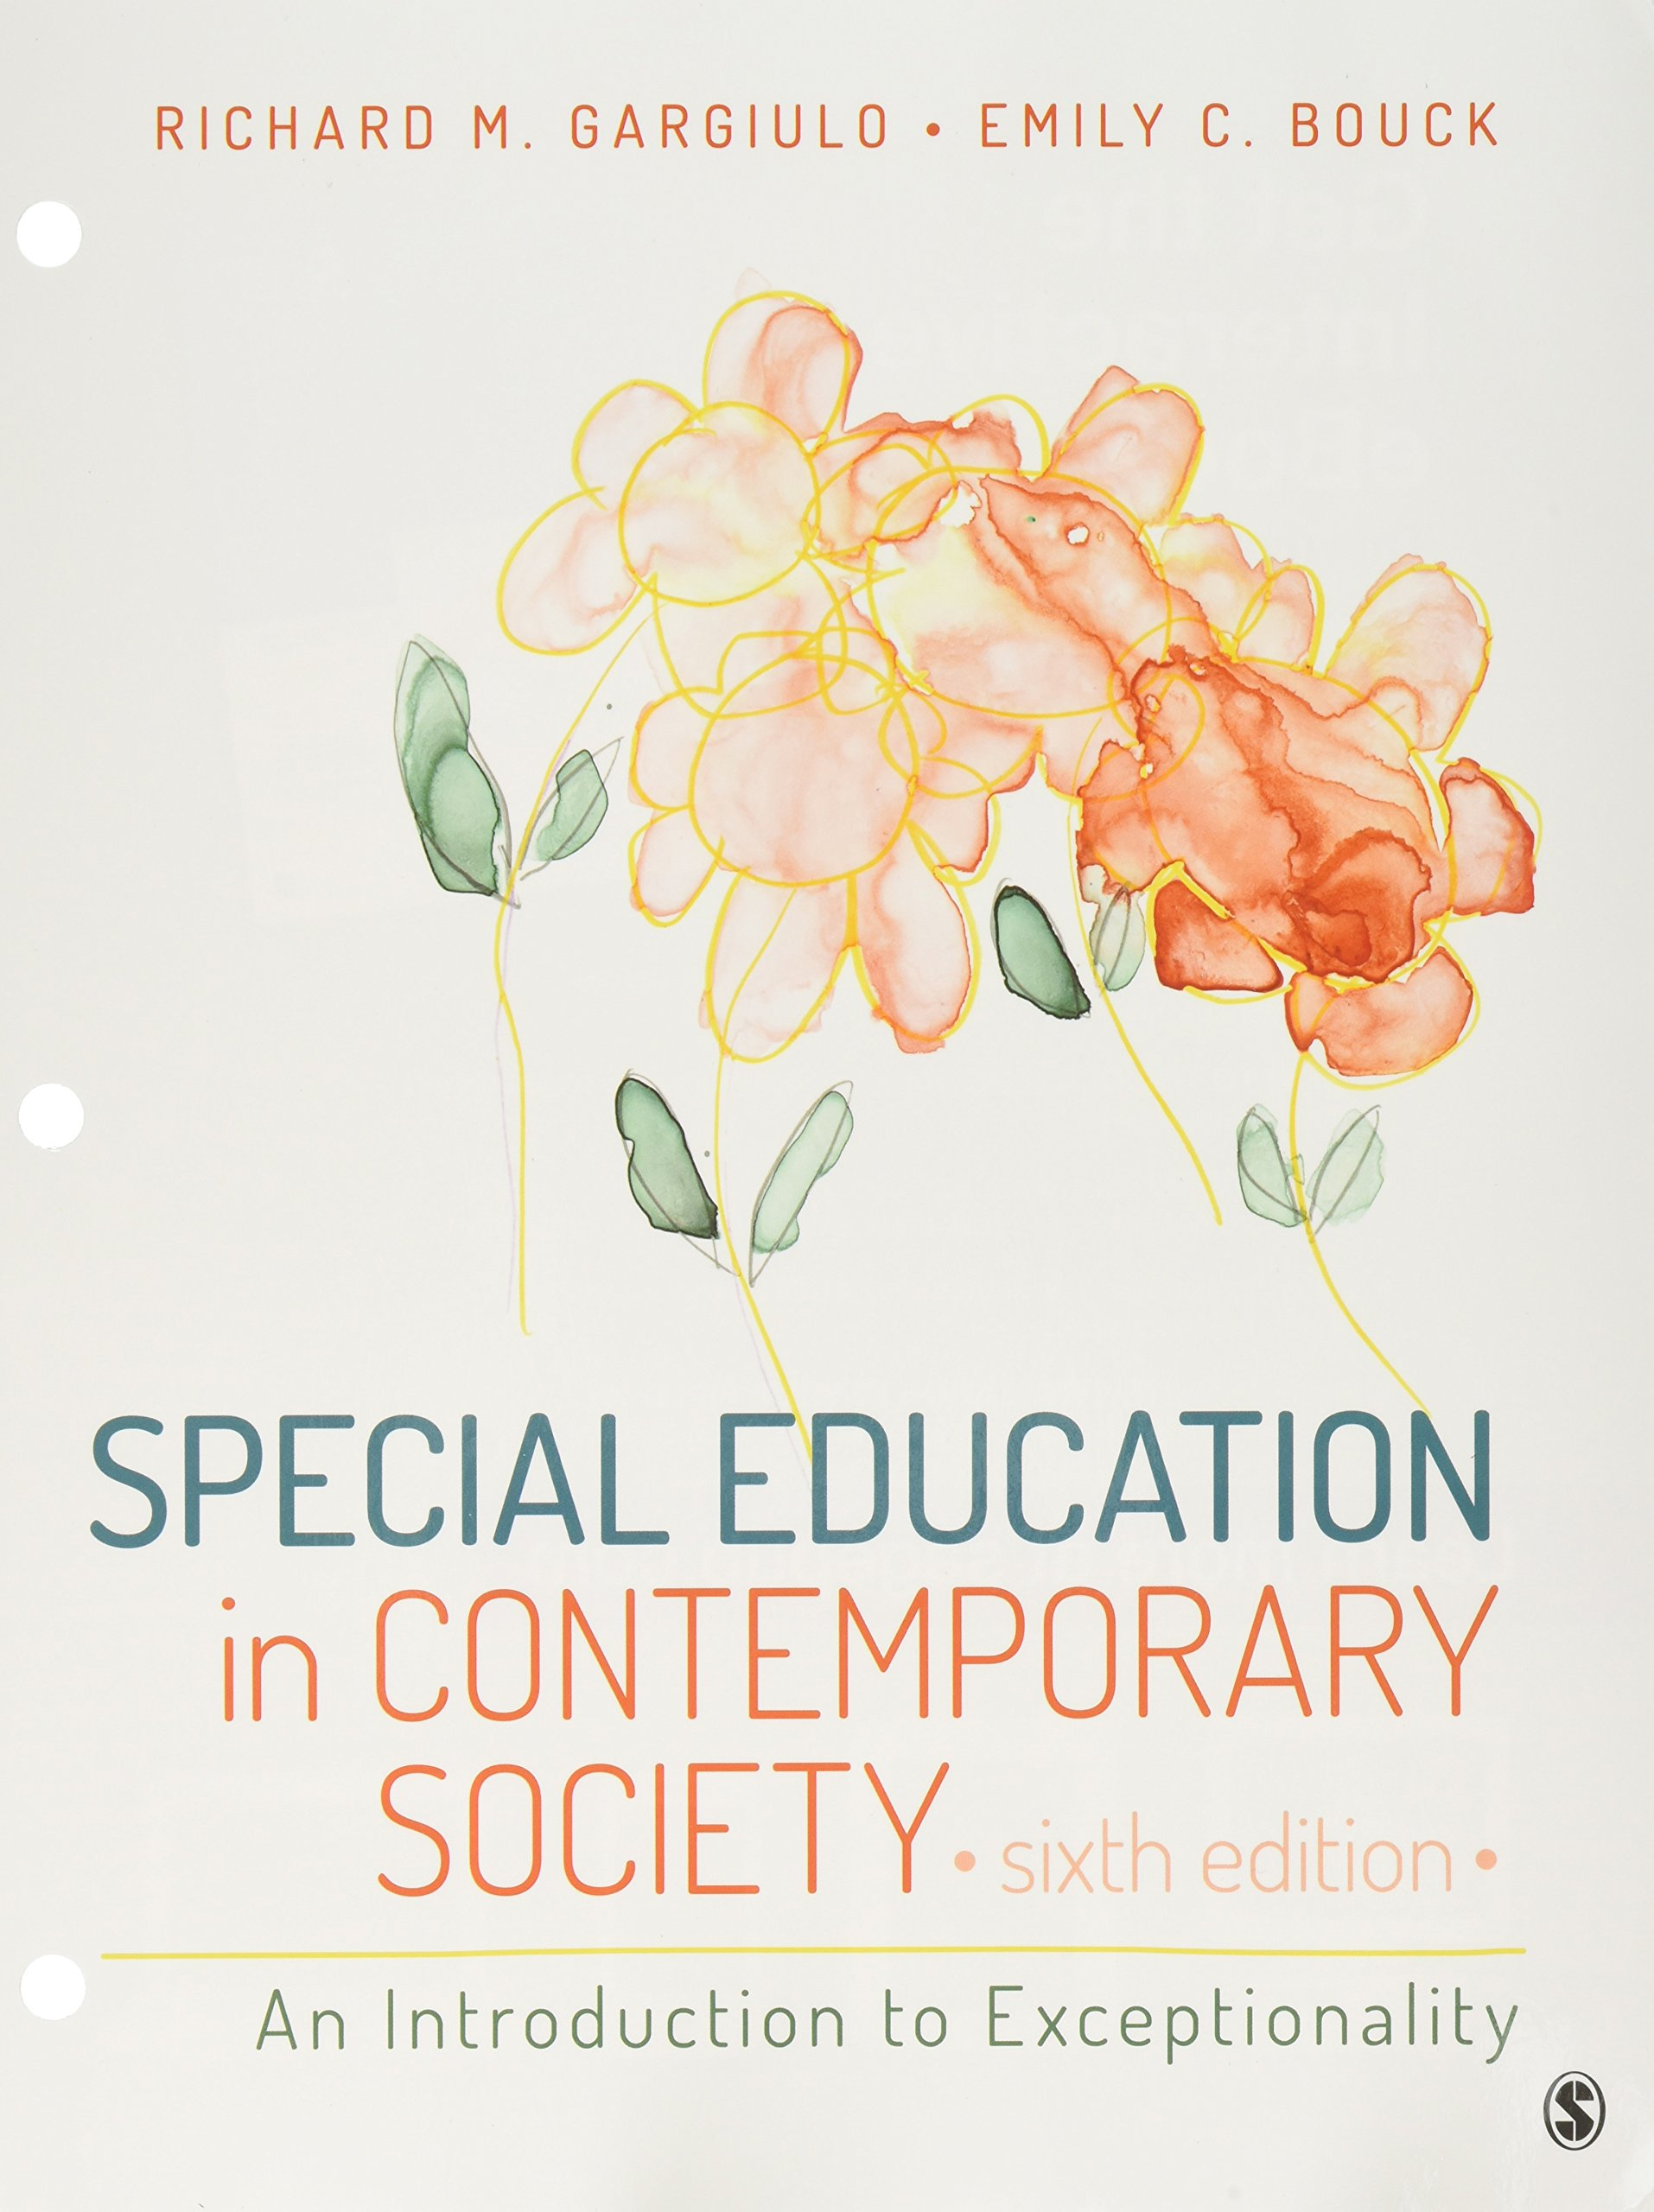 BUNDLE: Gargiulo: Special Education in Contemporary Society 6e (Loose Leaf)  + Gargiulo: Special Education in Contemporary Society Interactive eBook 6e:  ...